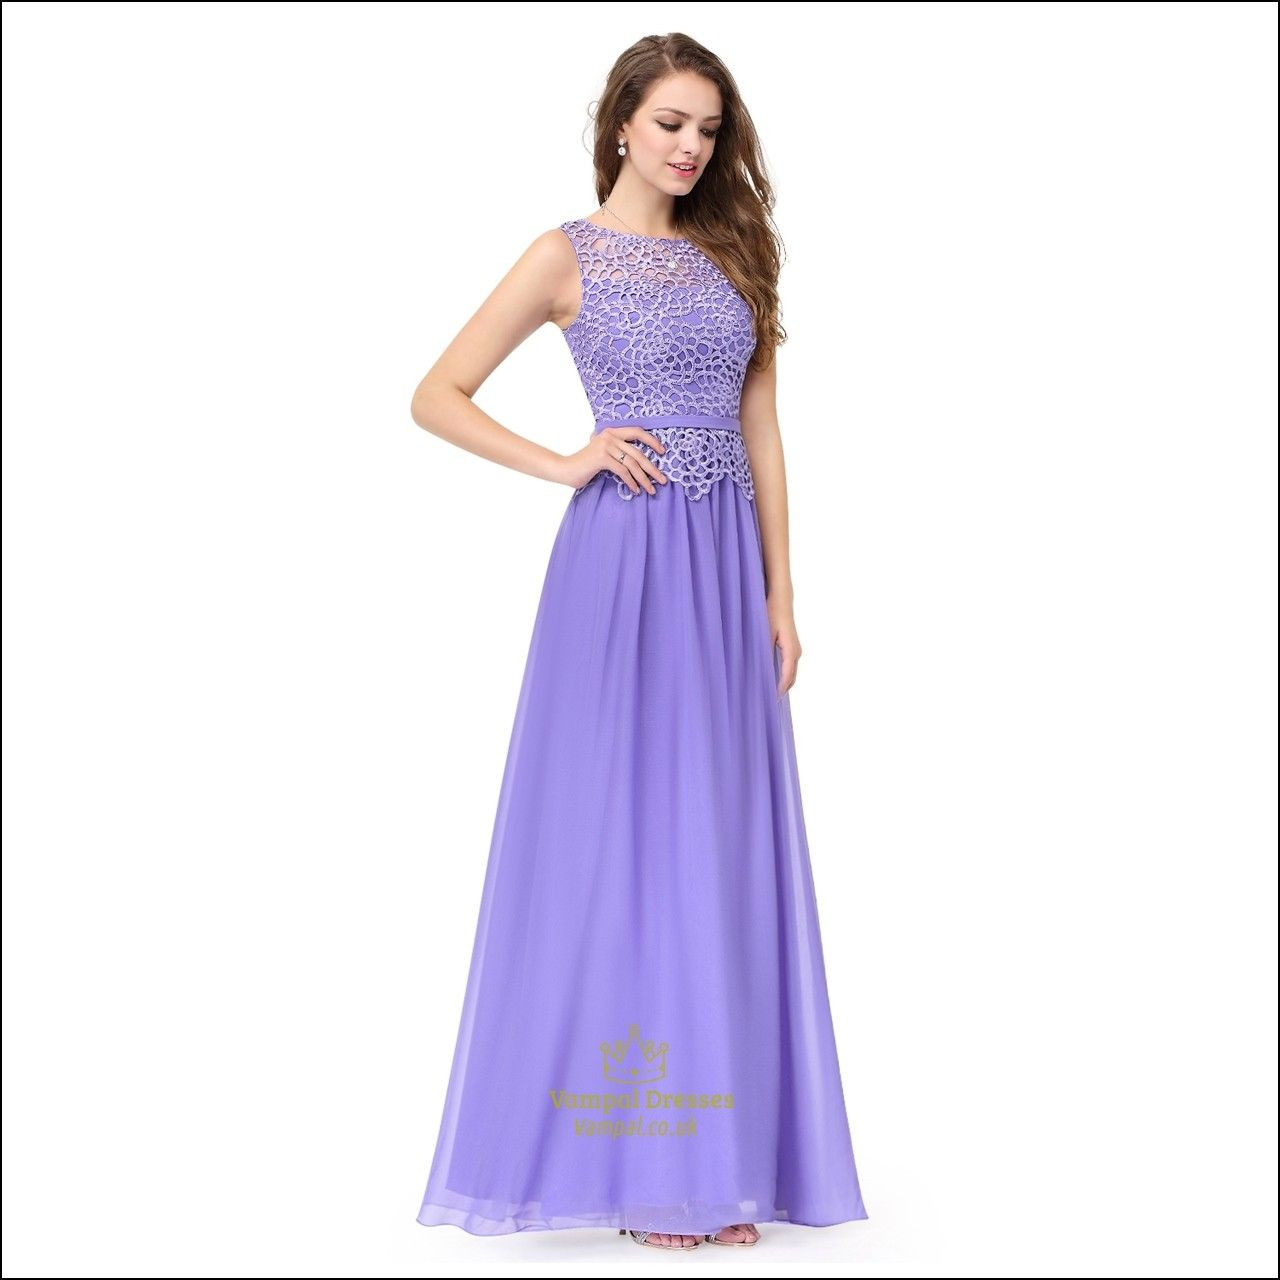 Amethyst Purple Bridesmaid Dresses | Dresses and Gowns Ideas ...